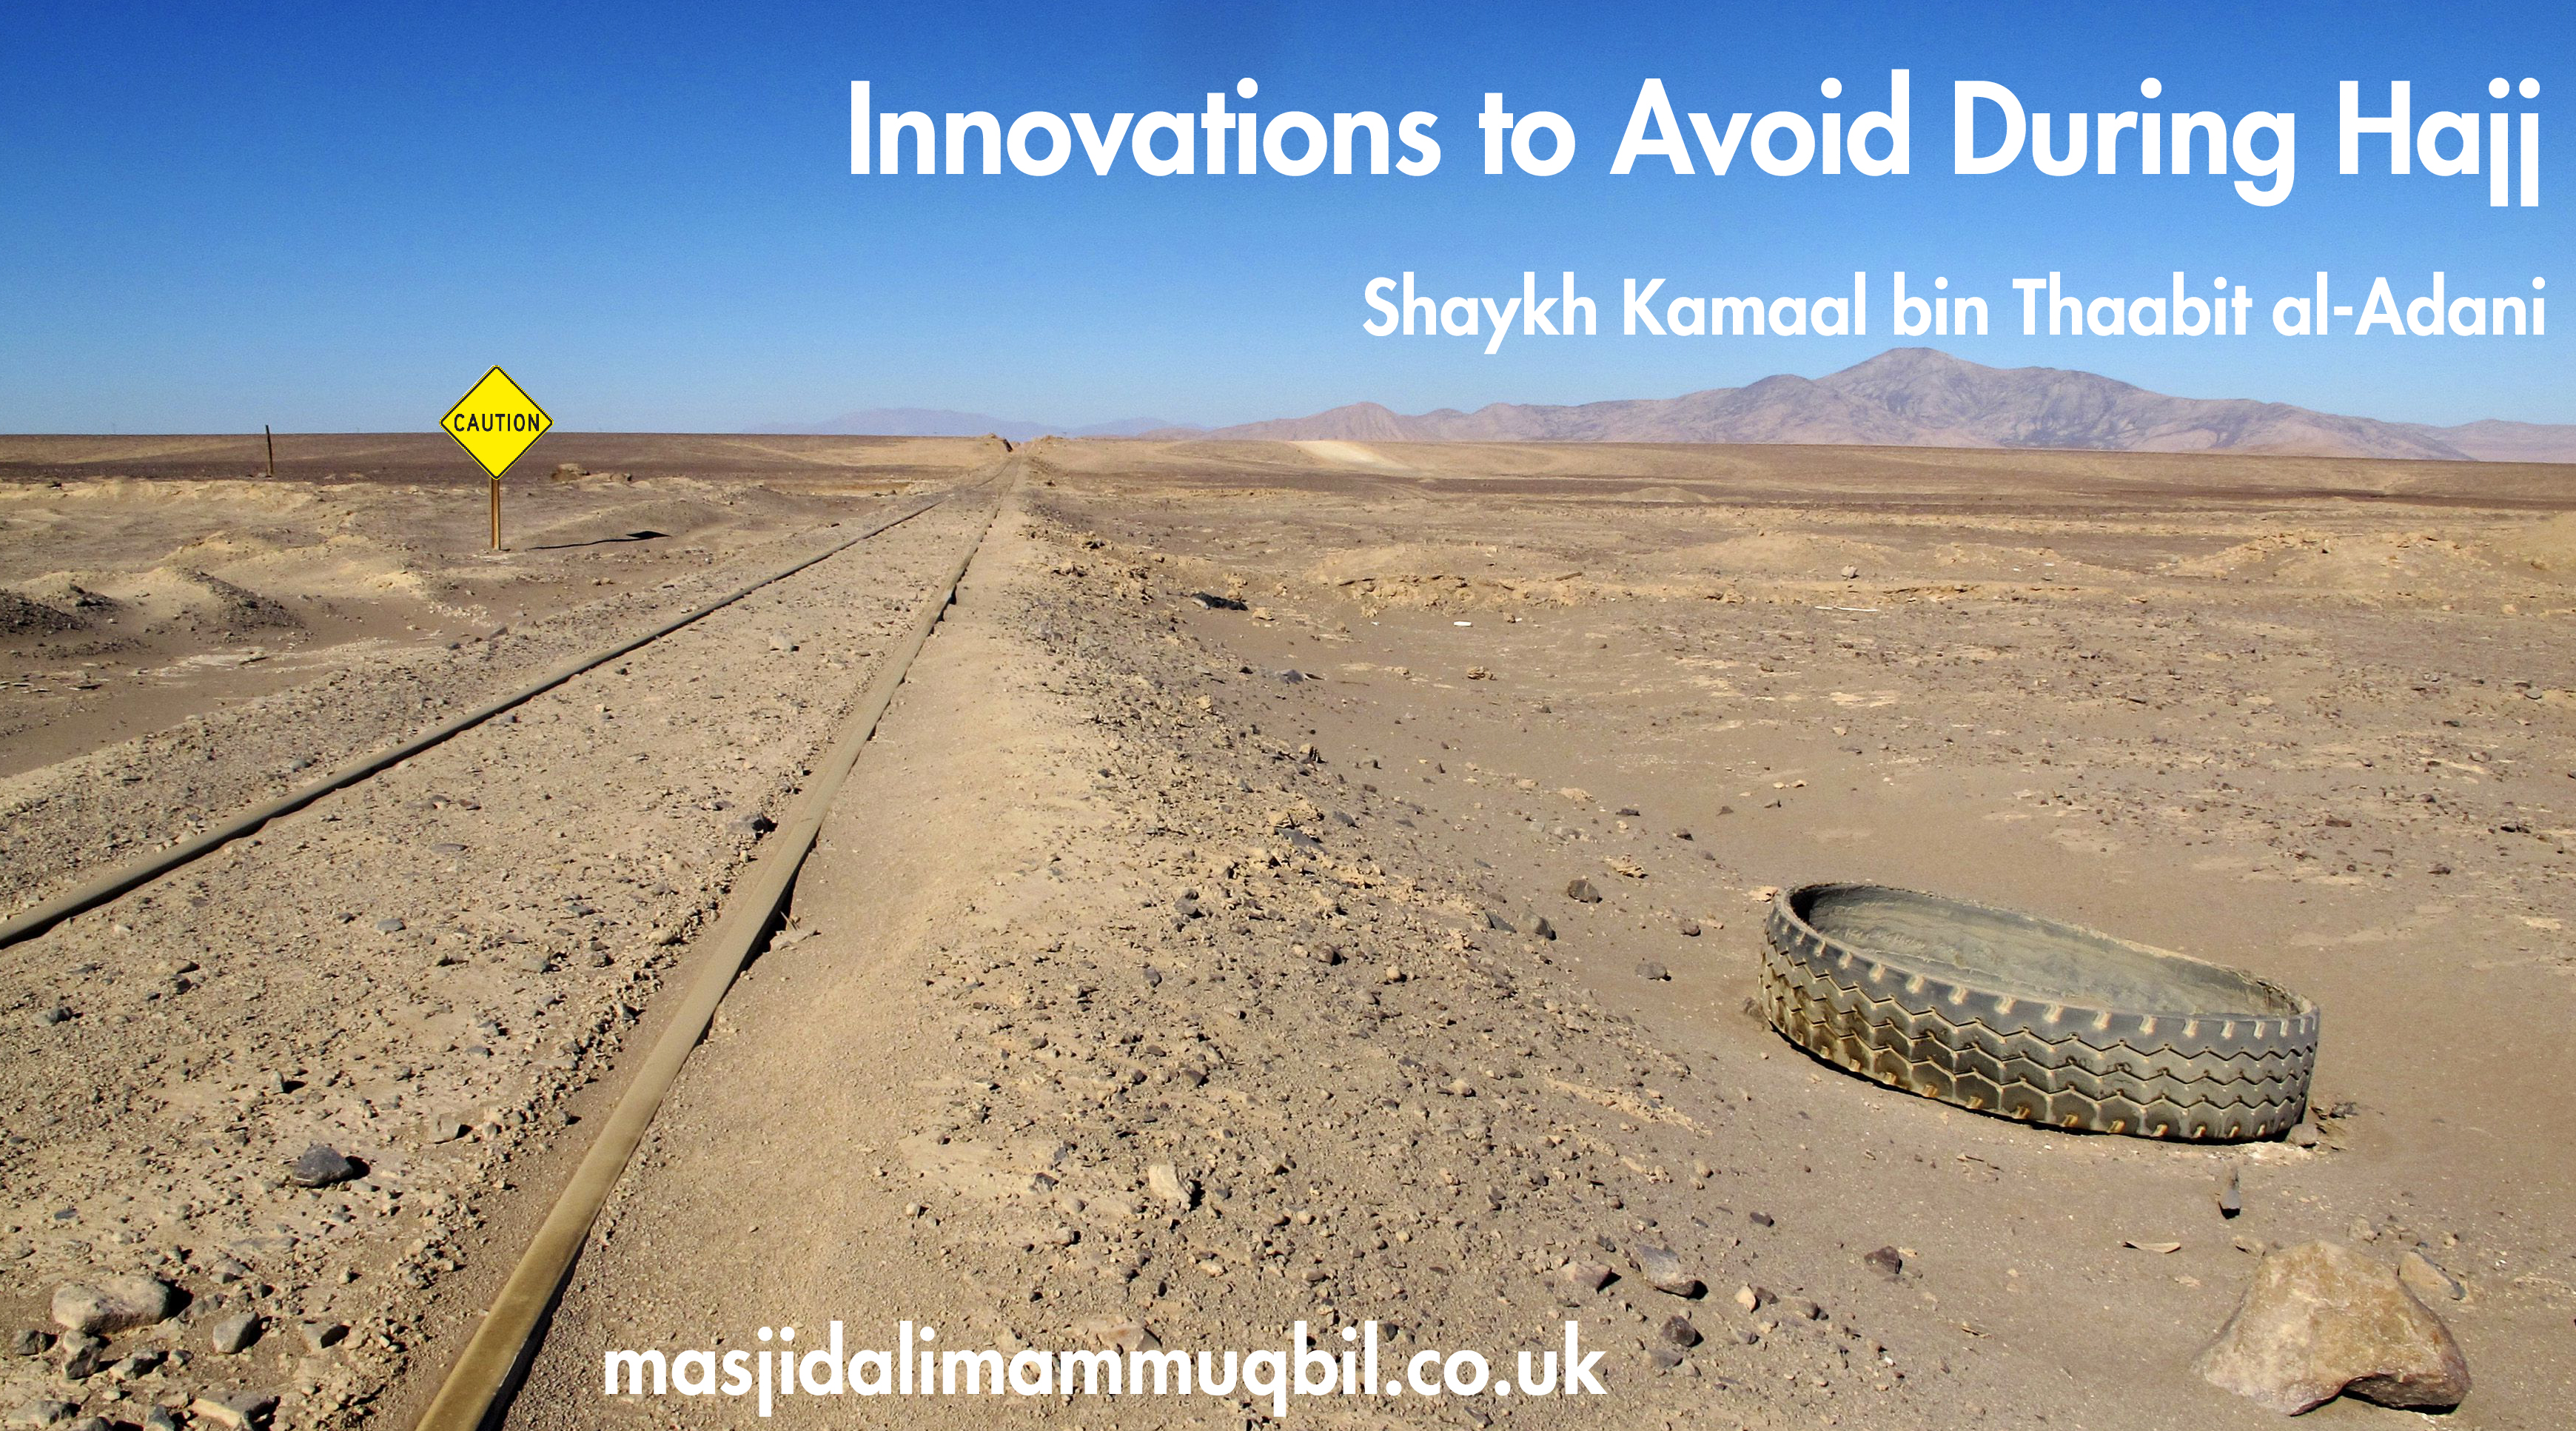 Innovations to Avoid During Hajj